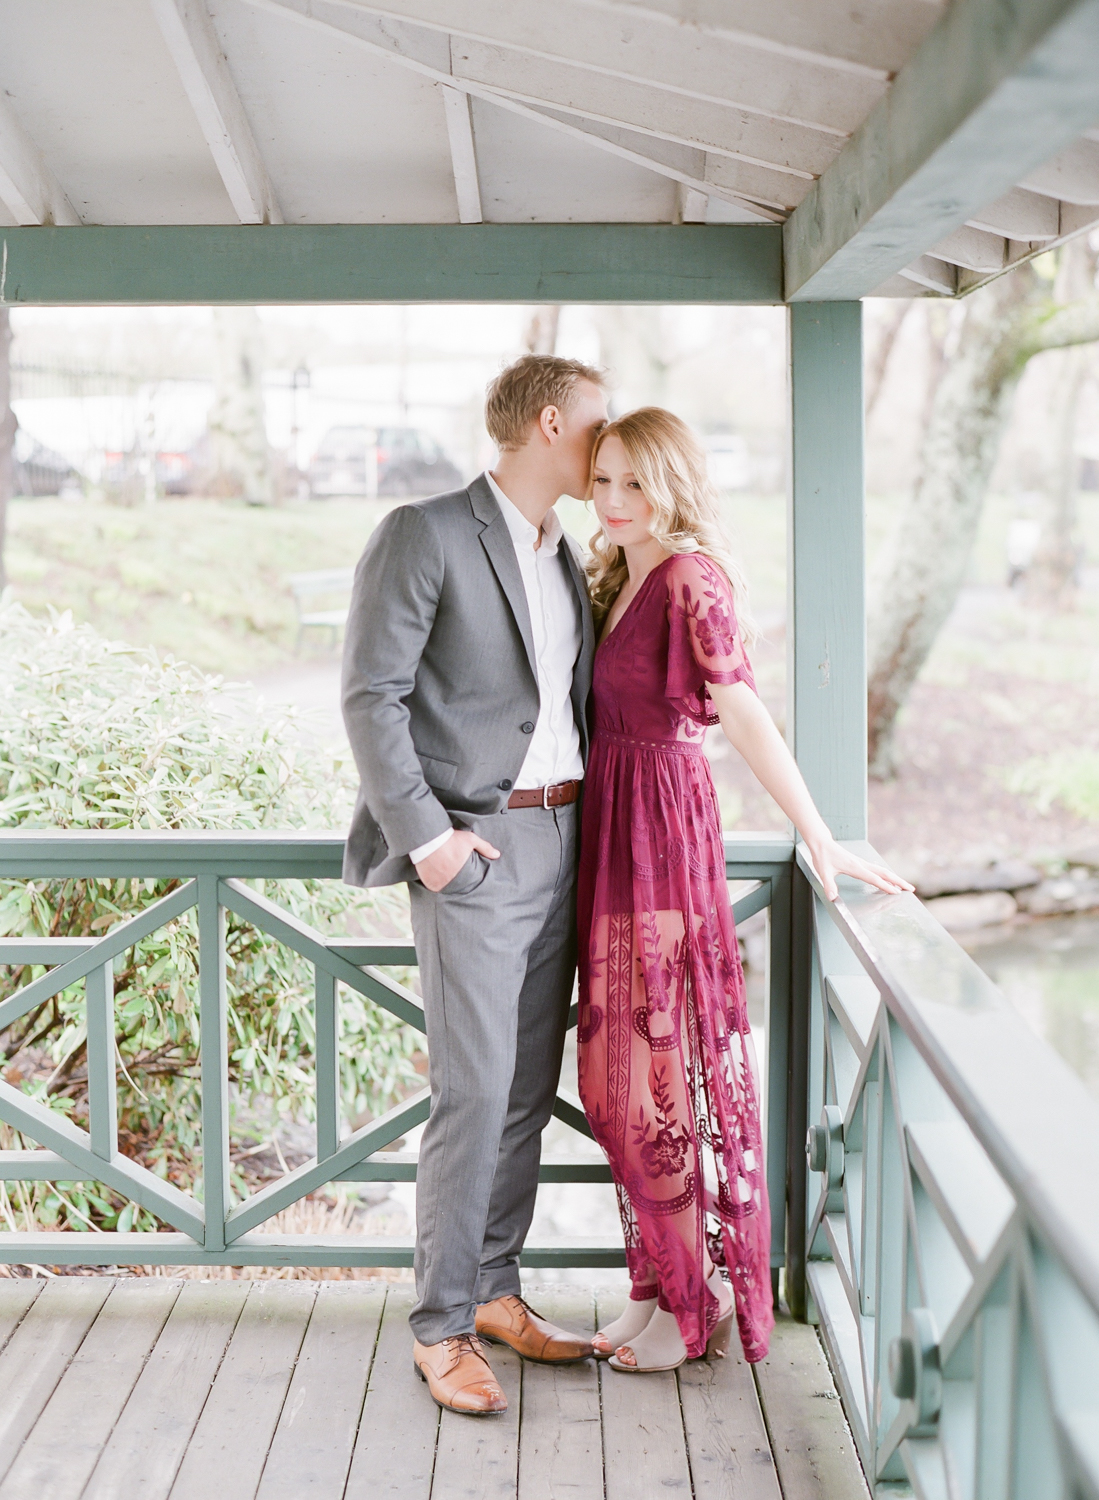 Jacqueline Anne Photography - Amanda and Brent-75.jpg